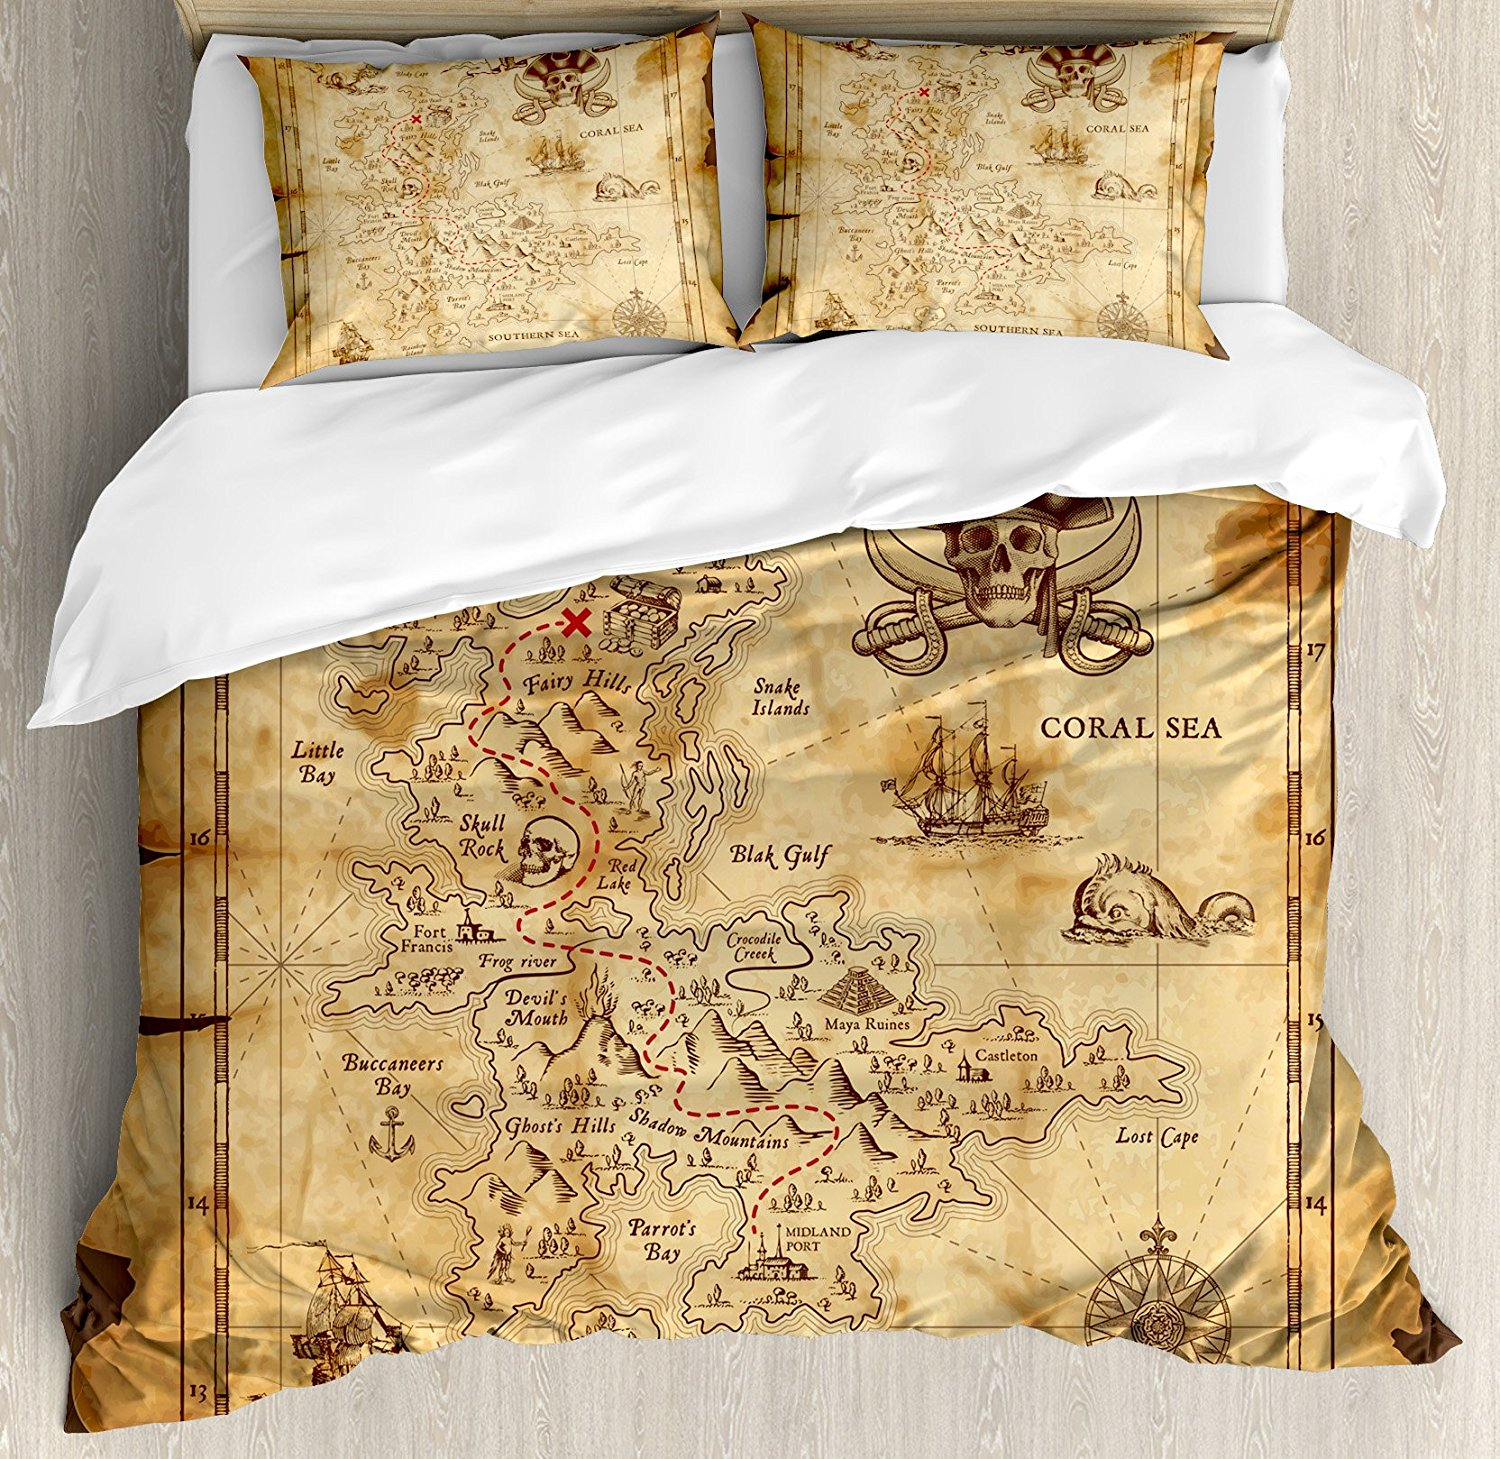 bedding quilts covers comforters sierra best lodge duvet accents of the and hiend rustic sets